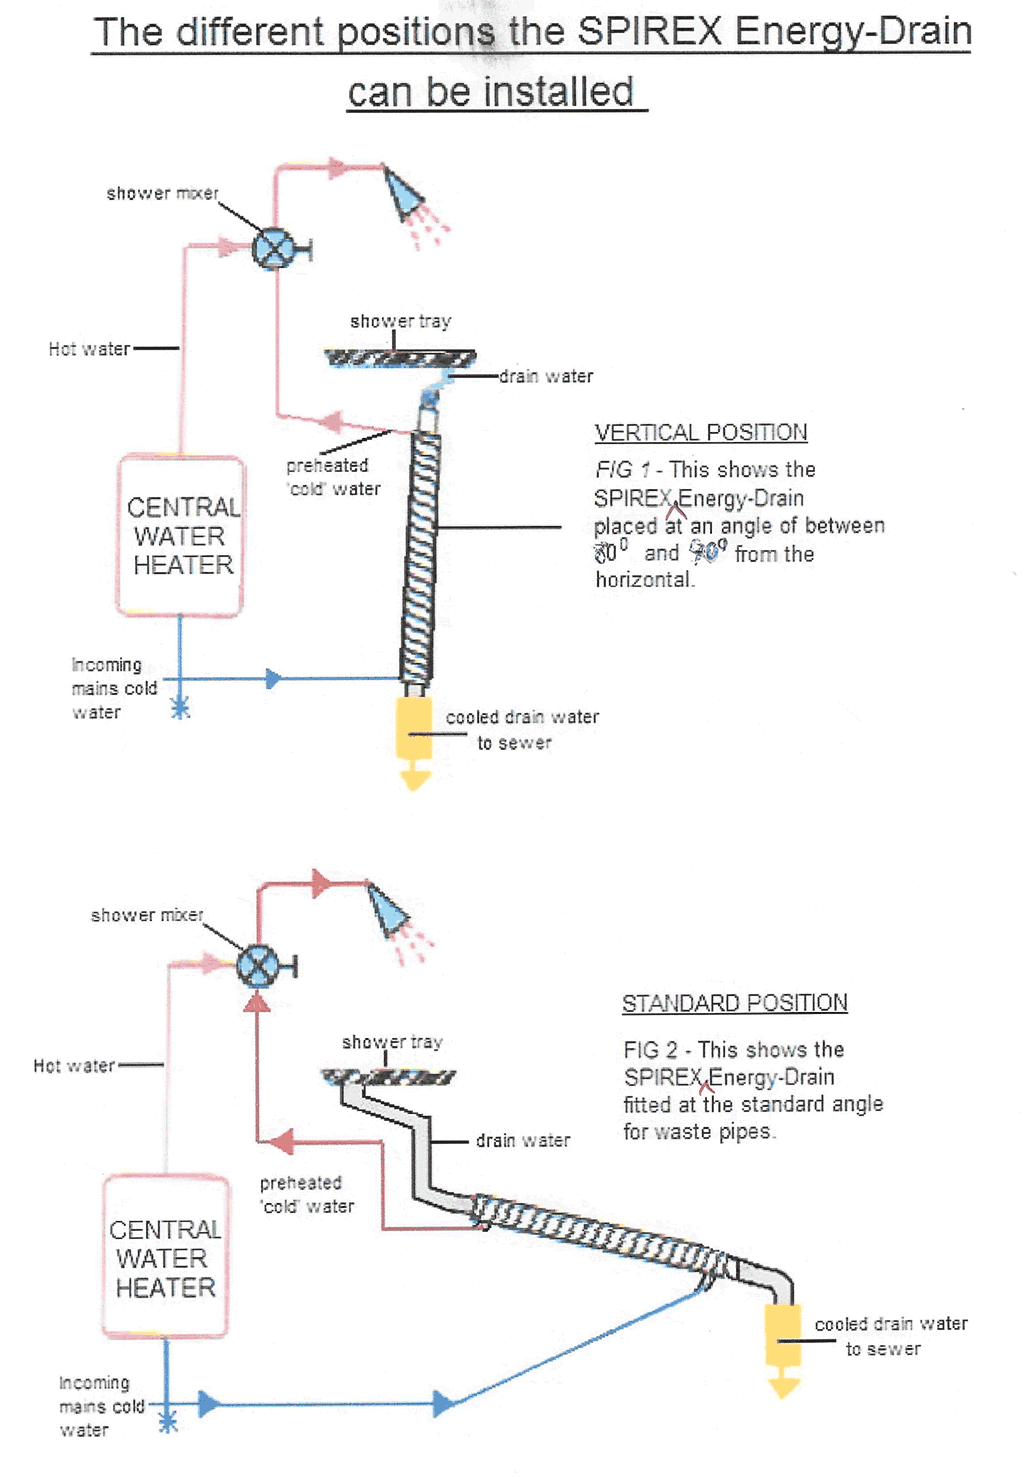 Showerex installation on different angles